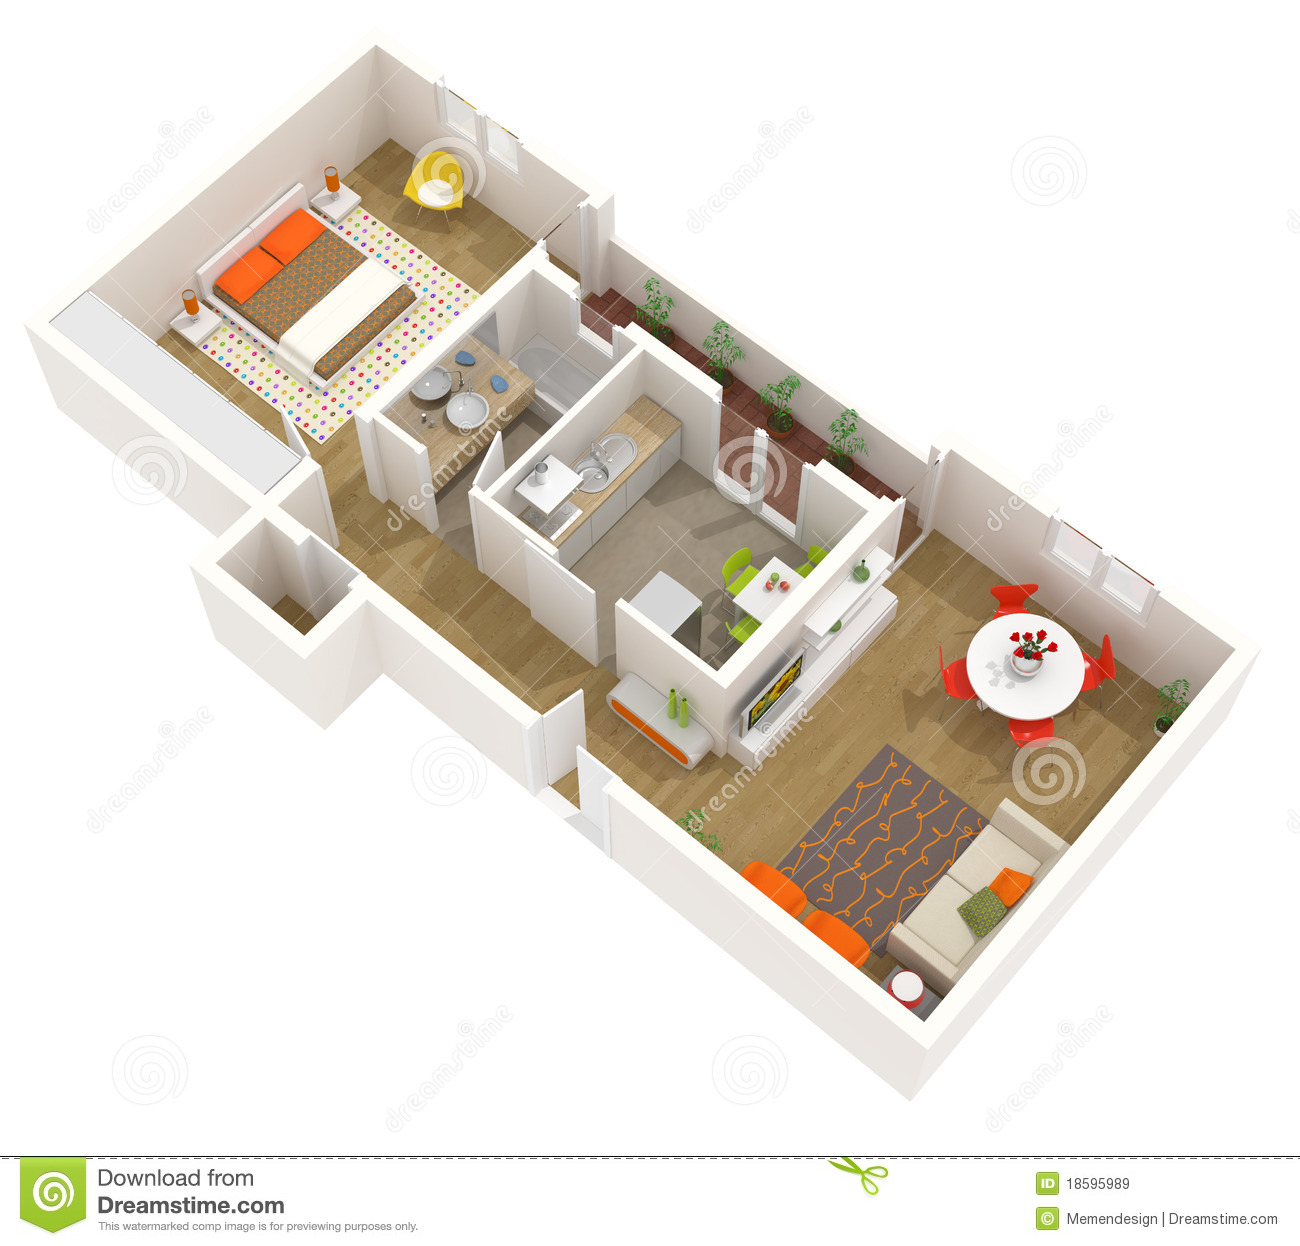 apartment interior design 3d floor plan - Home Design Plans 3d